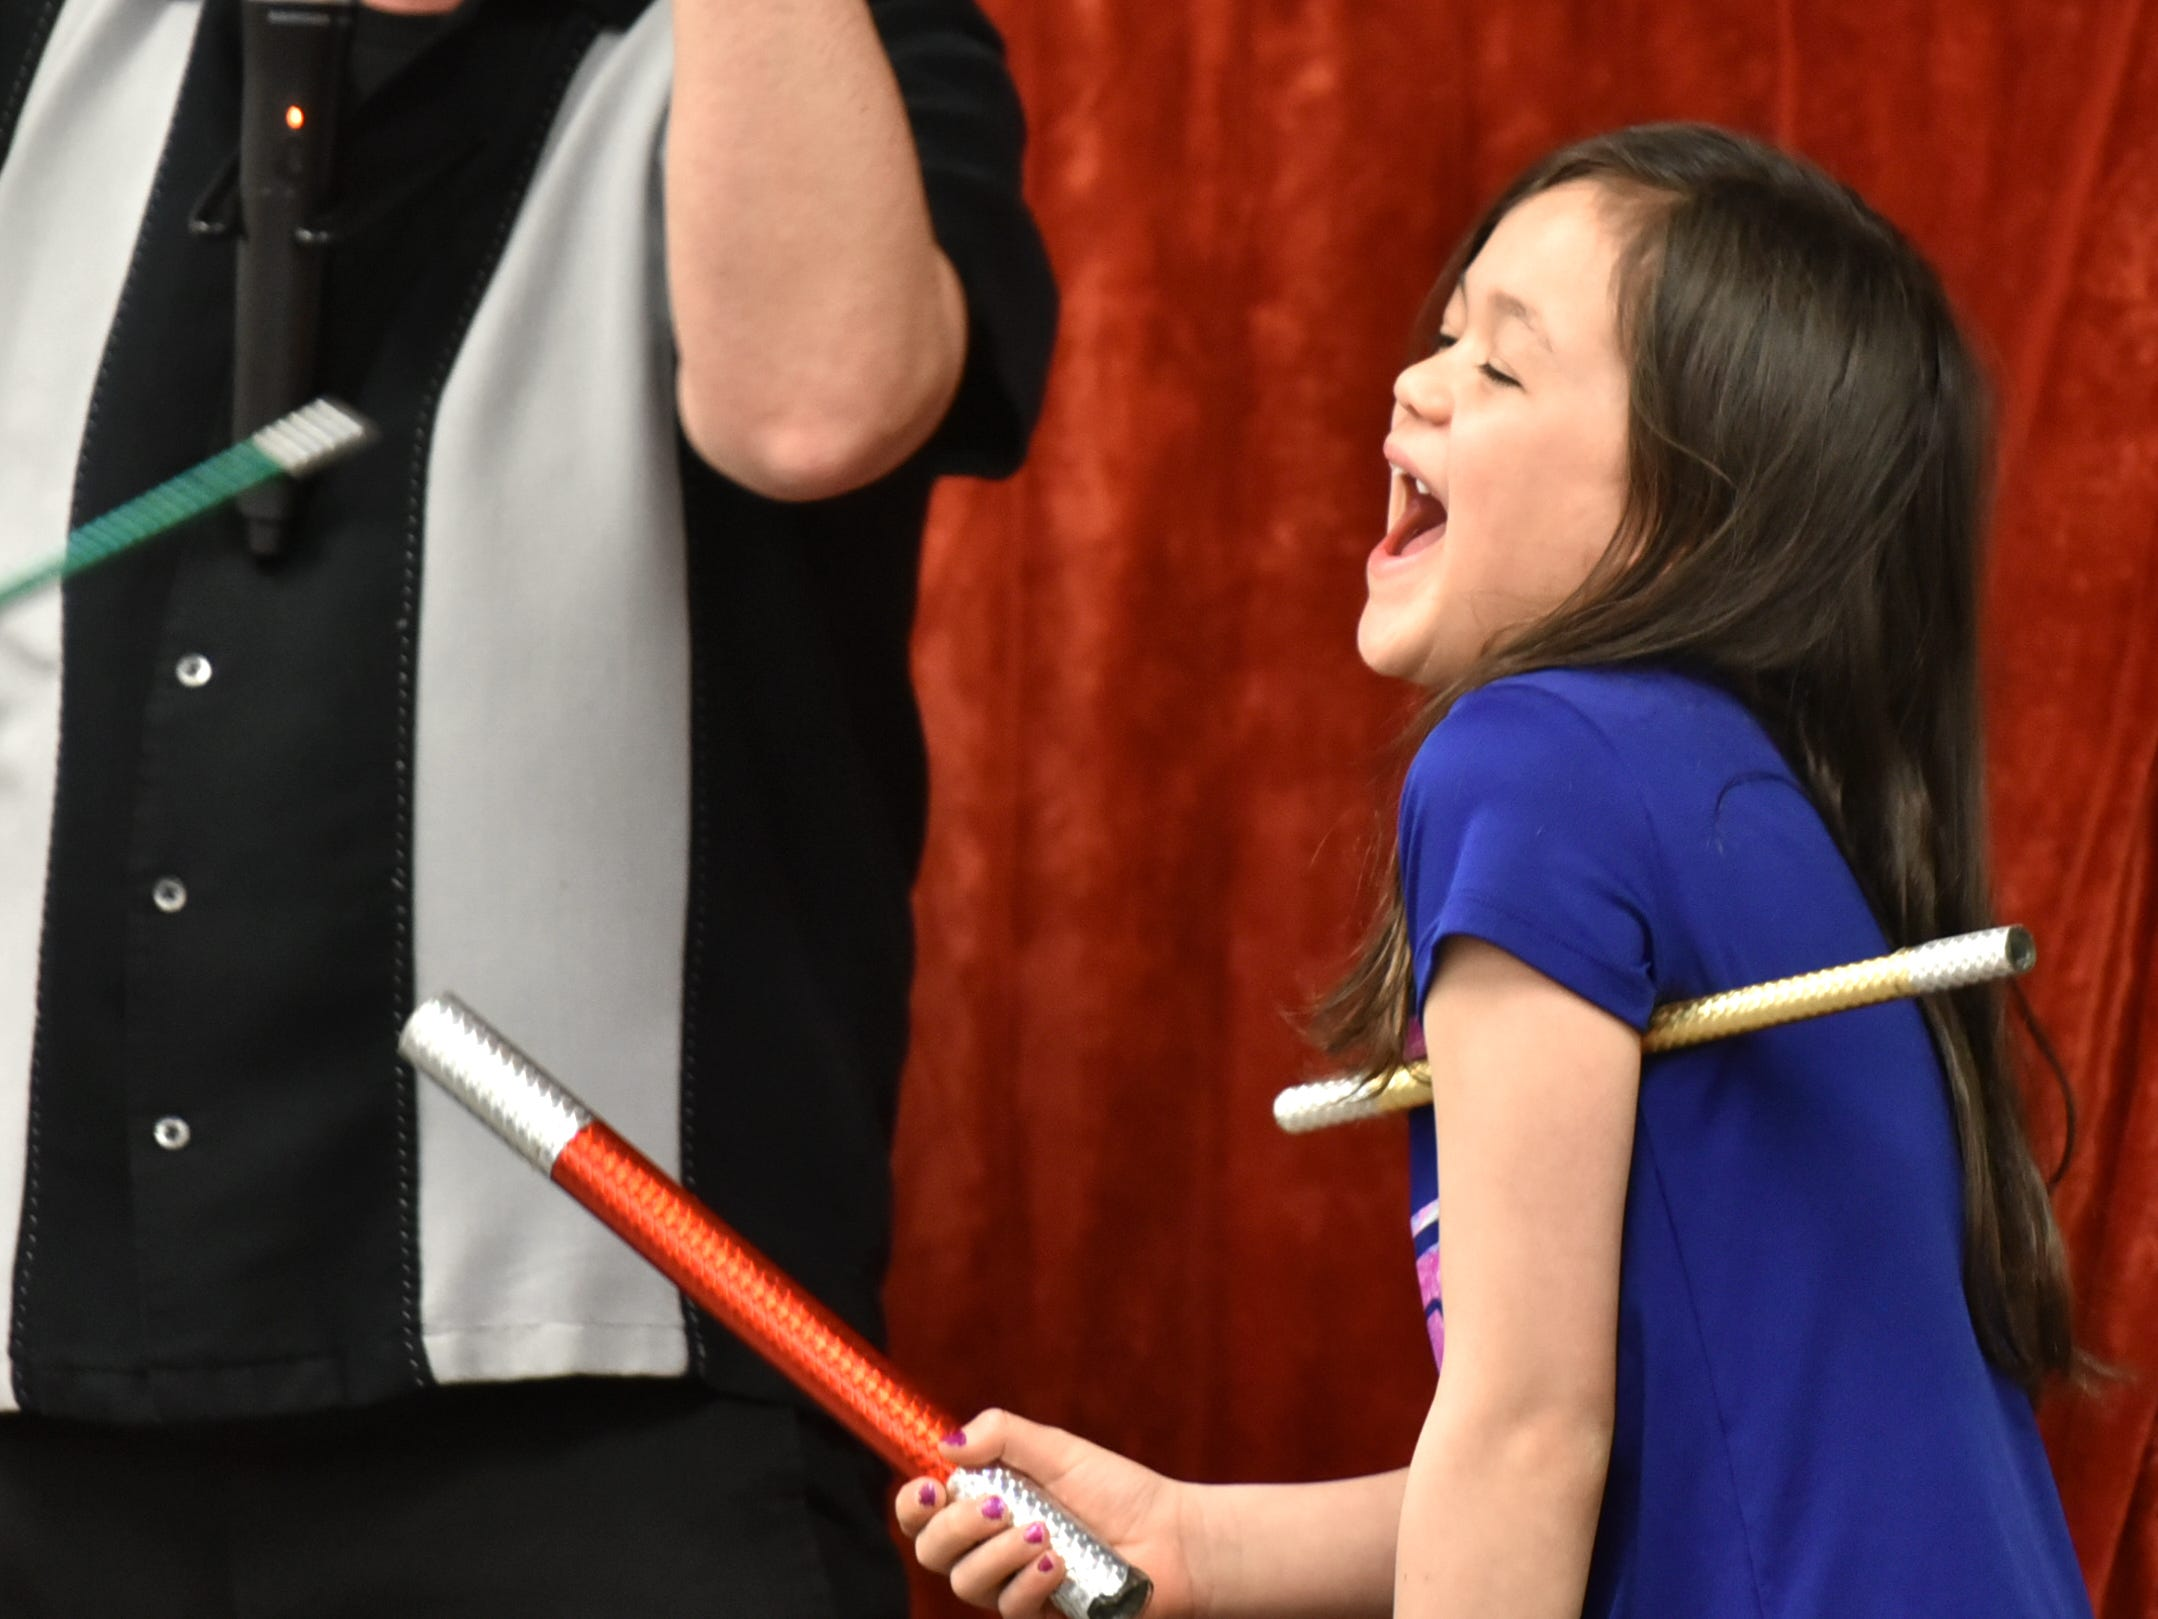 After getting more magic wands than she knows what to do with from Eugene Clark, left, and running out of hands to hold them in, Persephone Baglieri, 8, laughs out loud at her predicament.